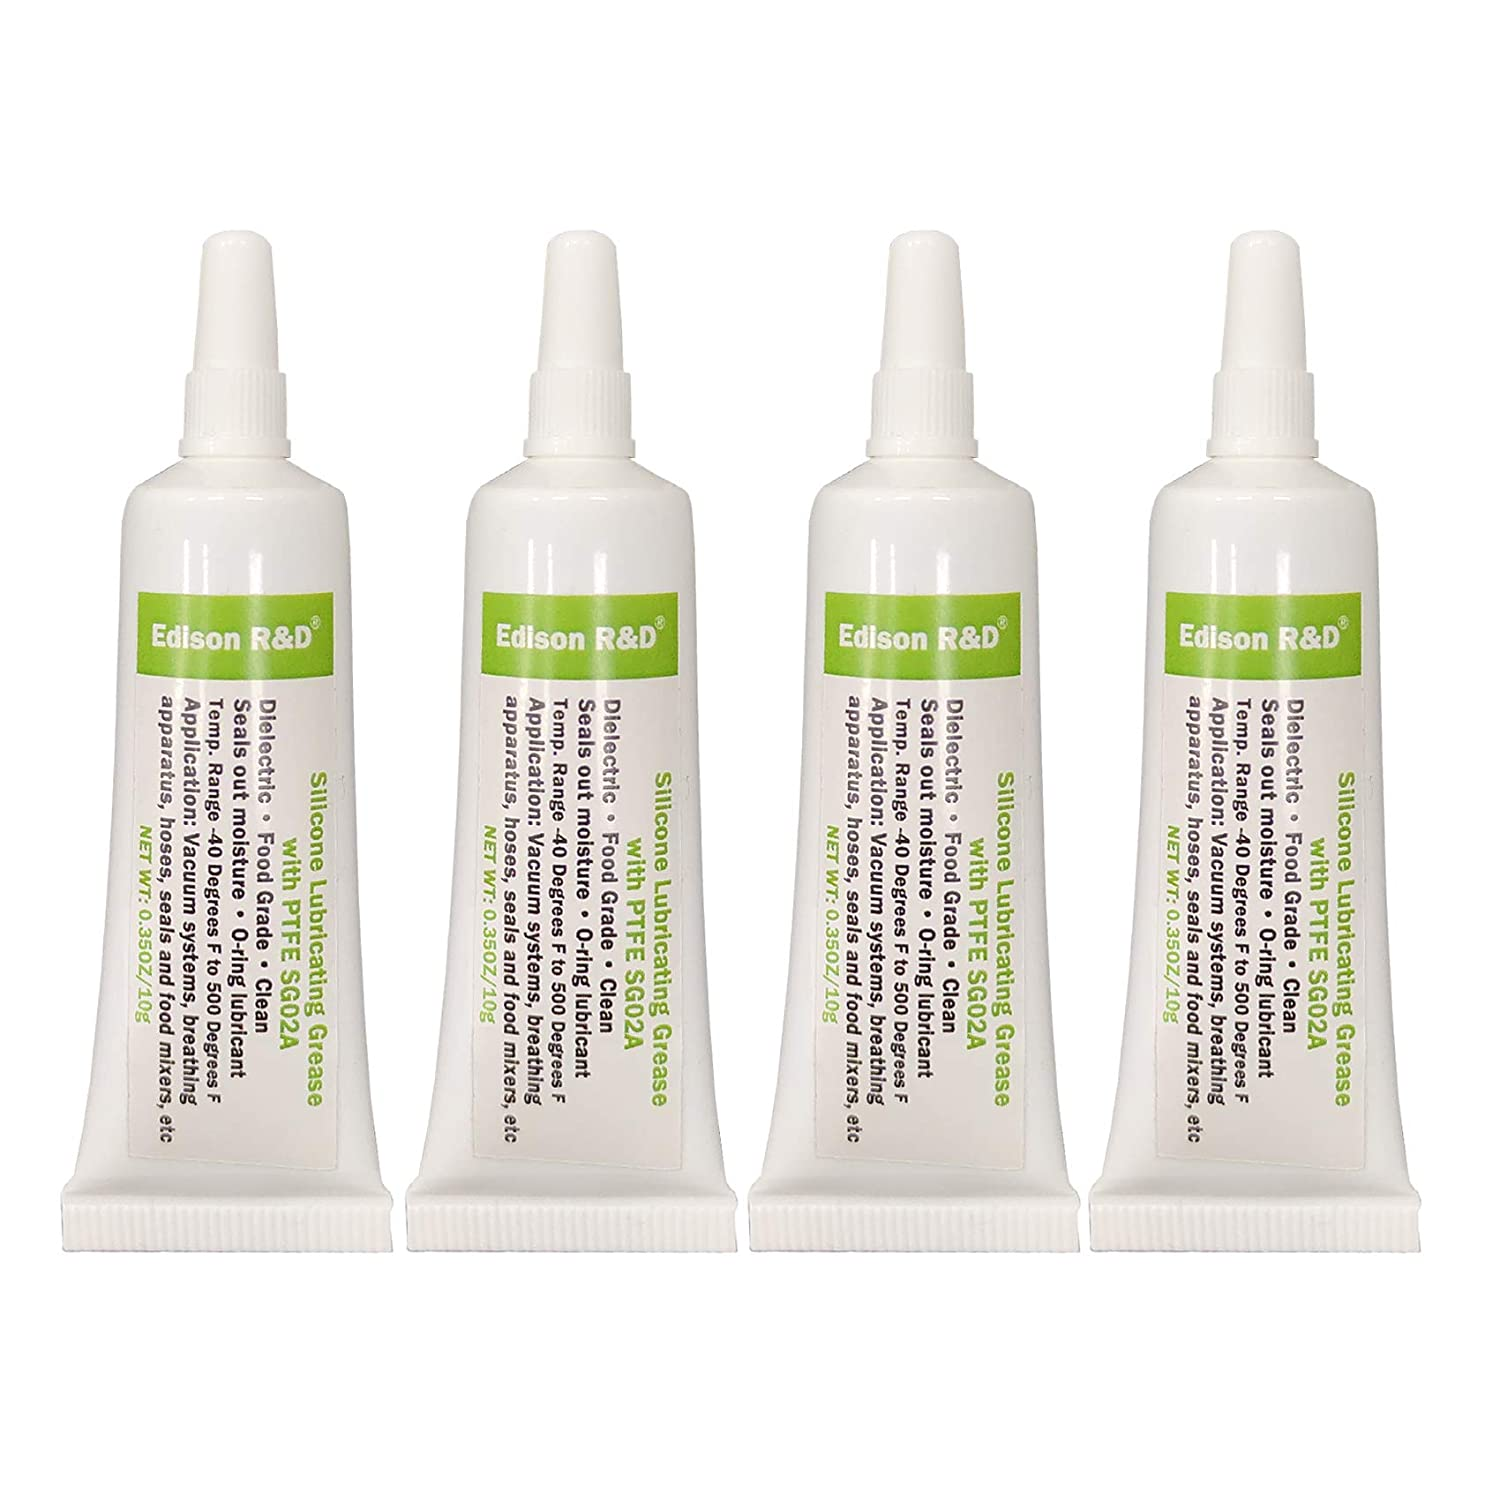 F Edison R&D Food Grade Silicone Grease SG02A with PTFE O-Ring Lubricant Faucet Leak Proof Multi-Functional Dielectric Seal Out Moisture Oil Resistant 0.35OZ(10g) x4 Pack